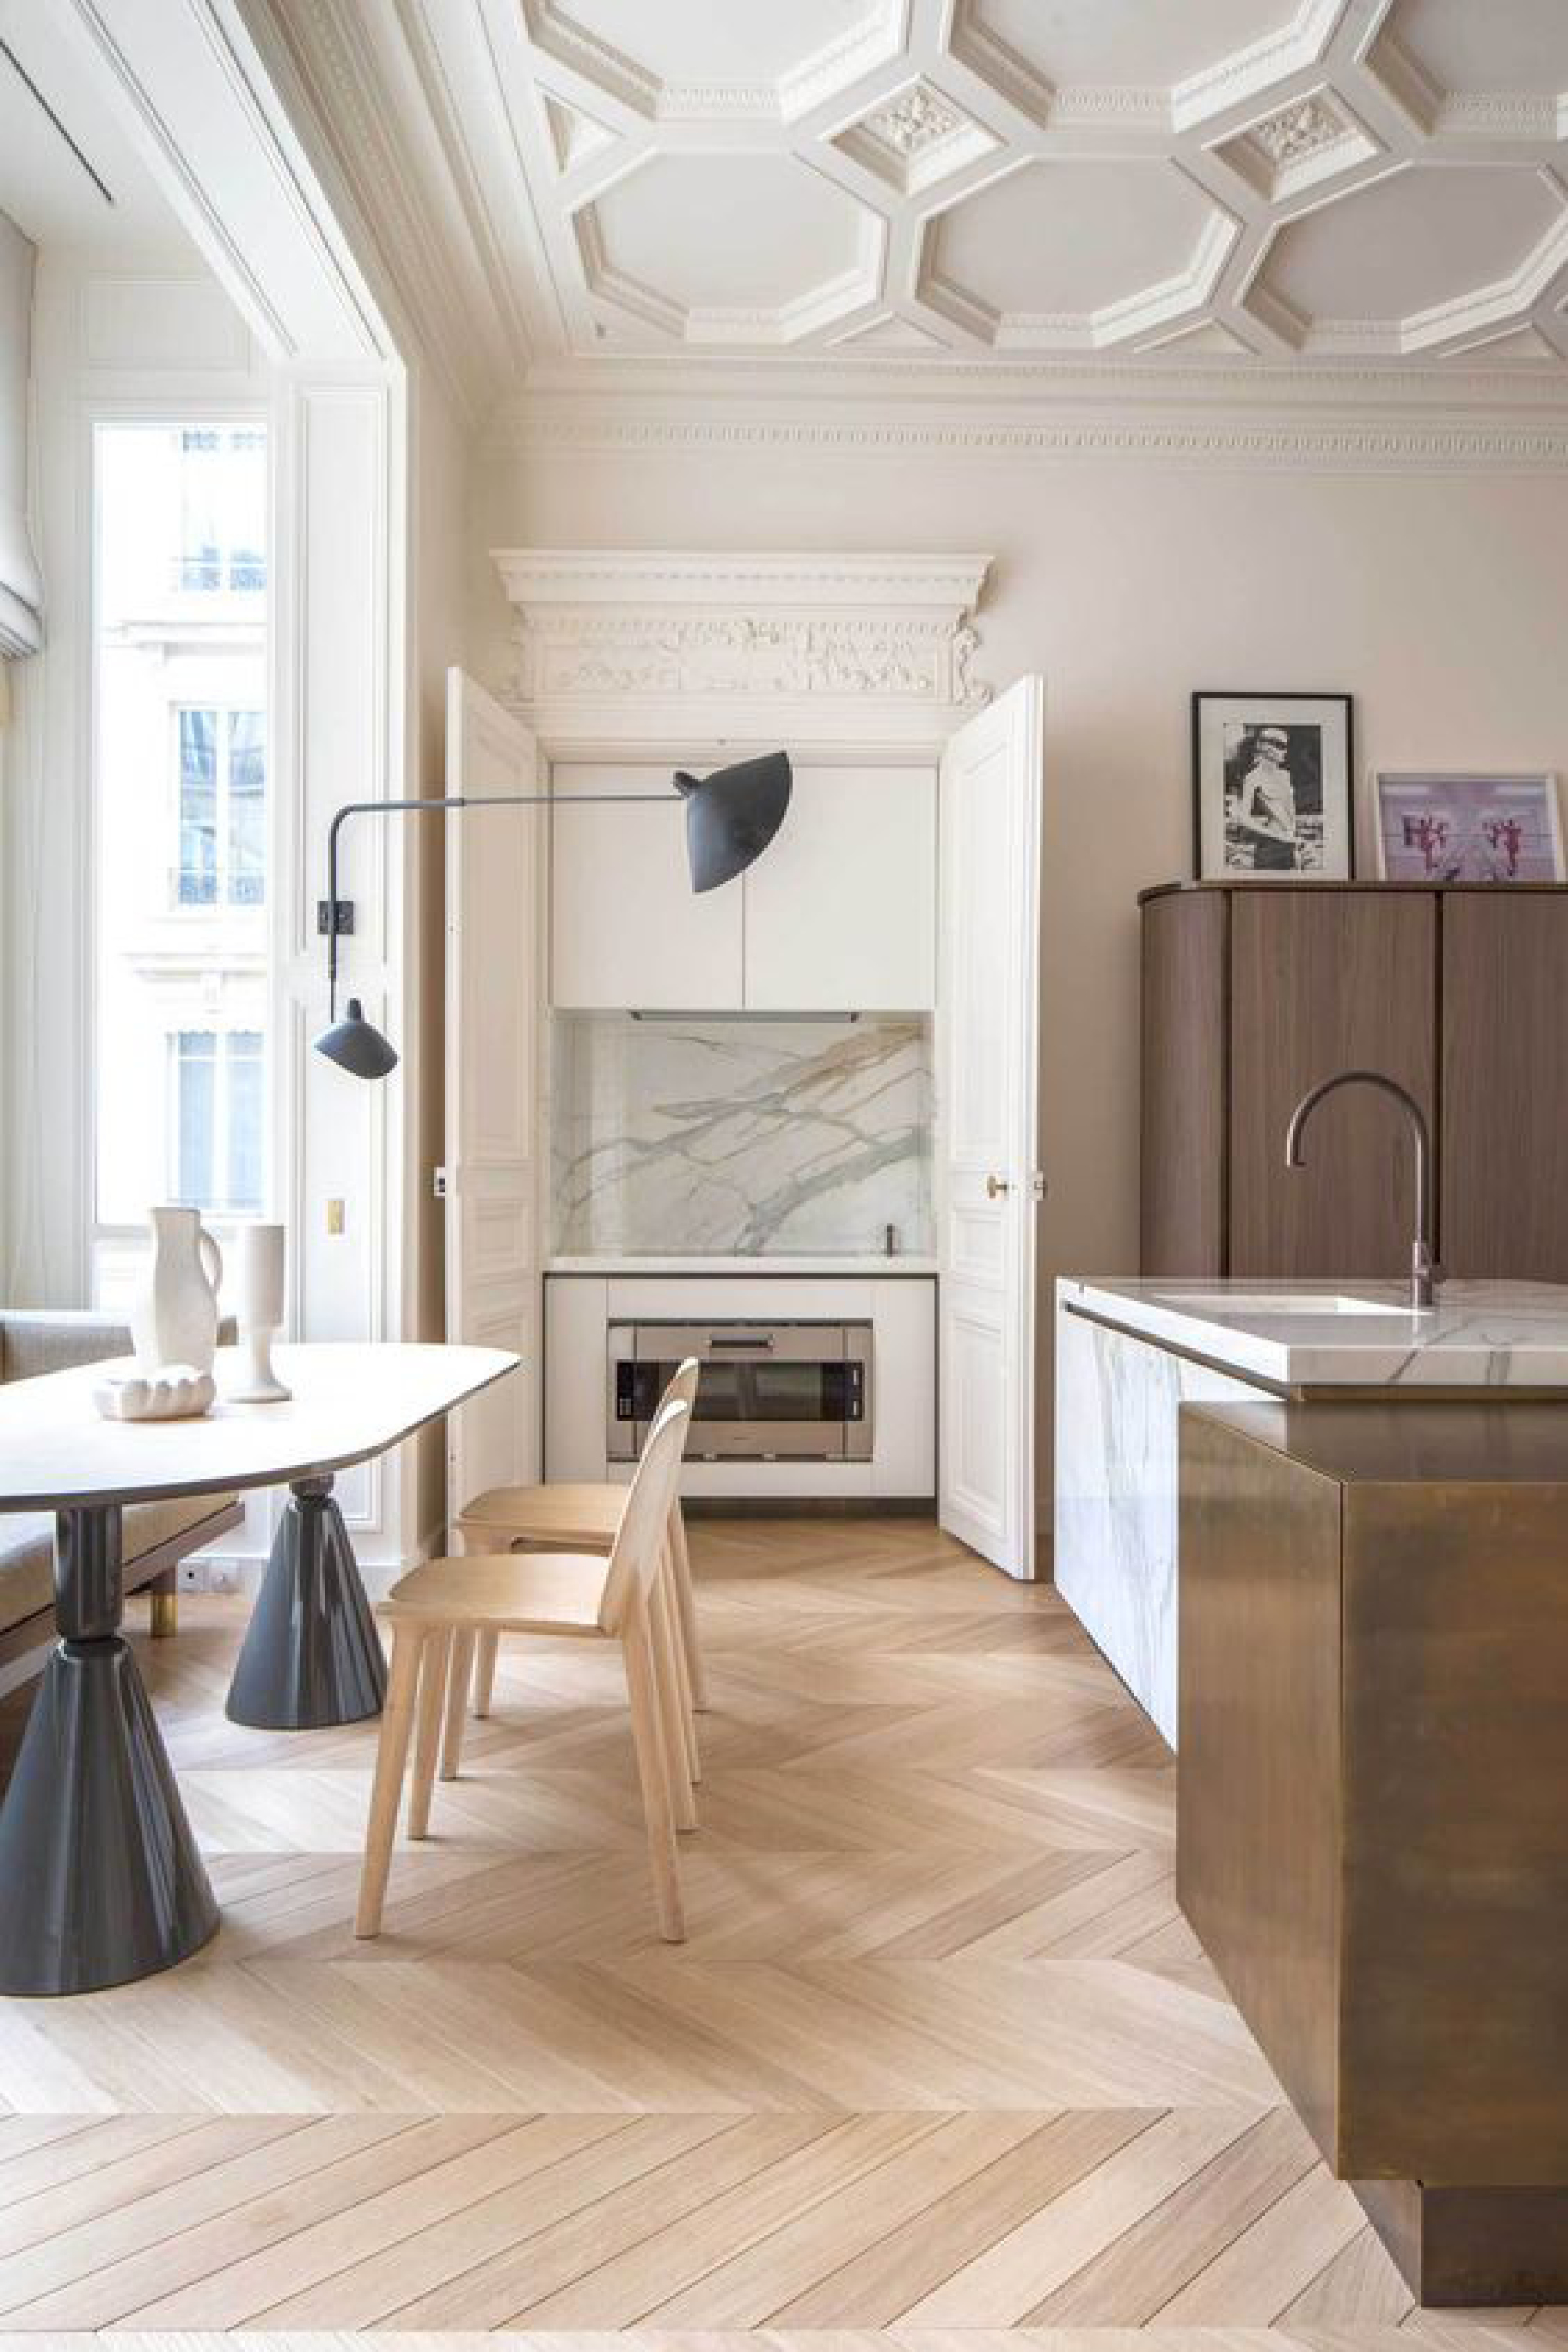 Apartment Trocadero by Rodolphe Parente Photography © Olivier Amsellem.